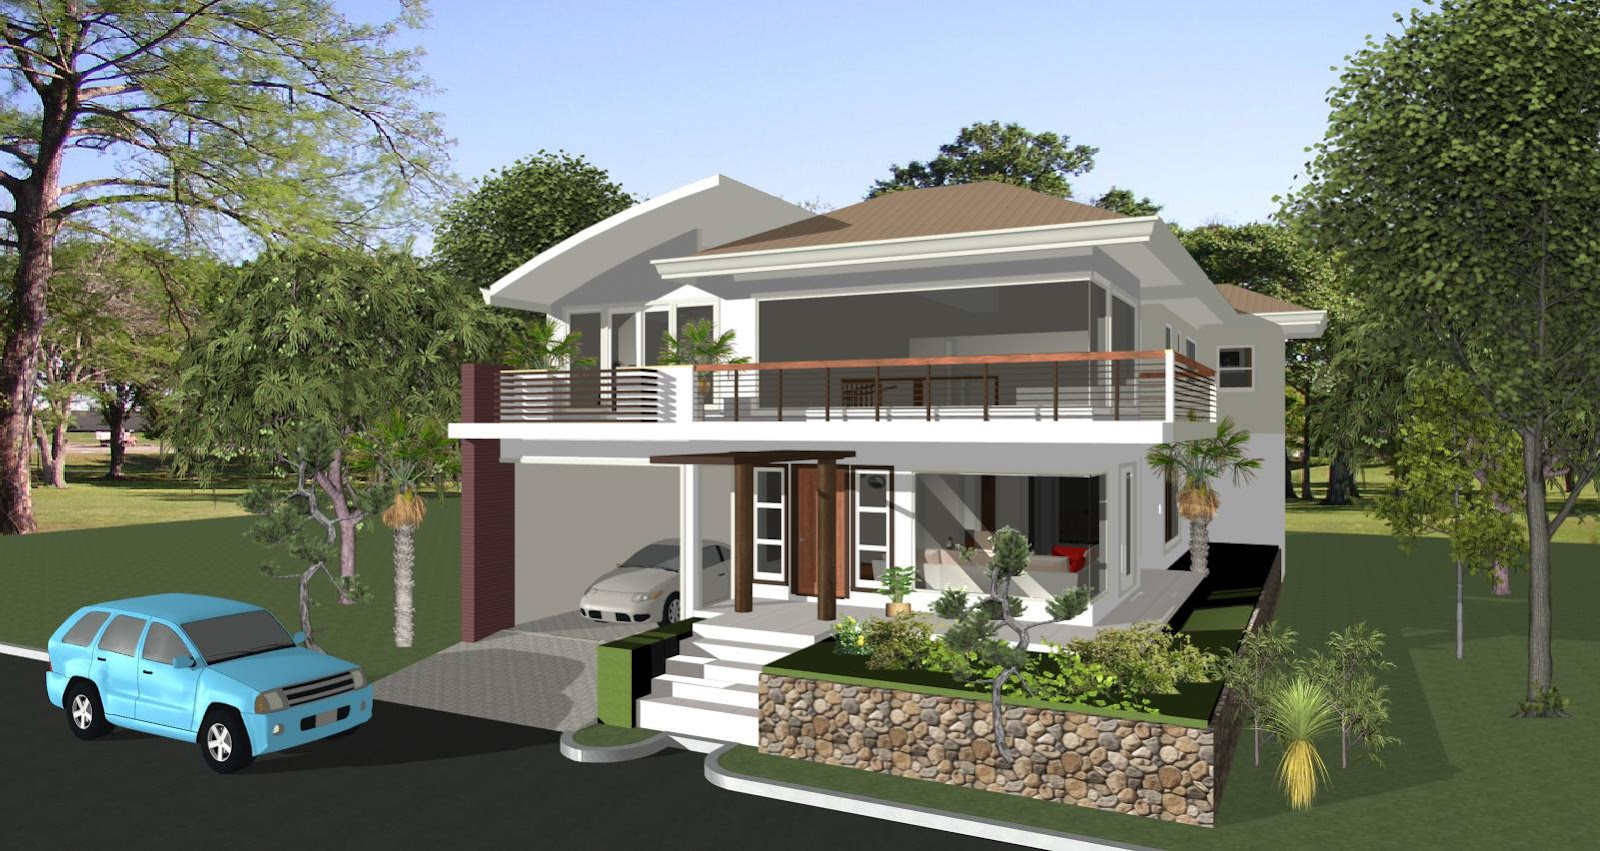 House designs philippines architect bill house plans Home design sites